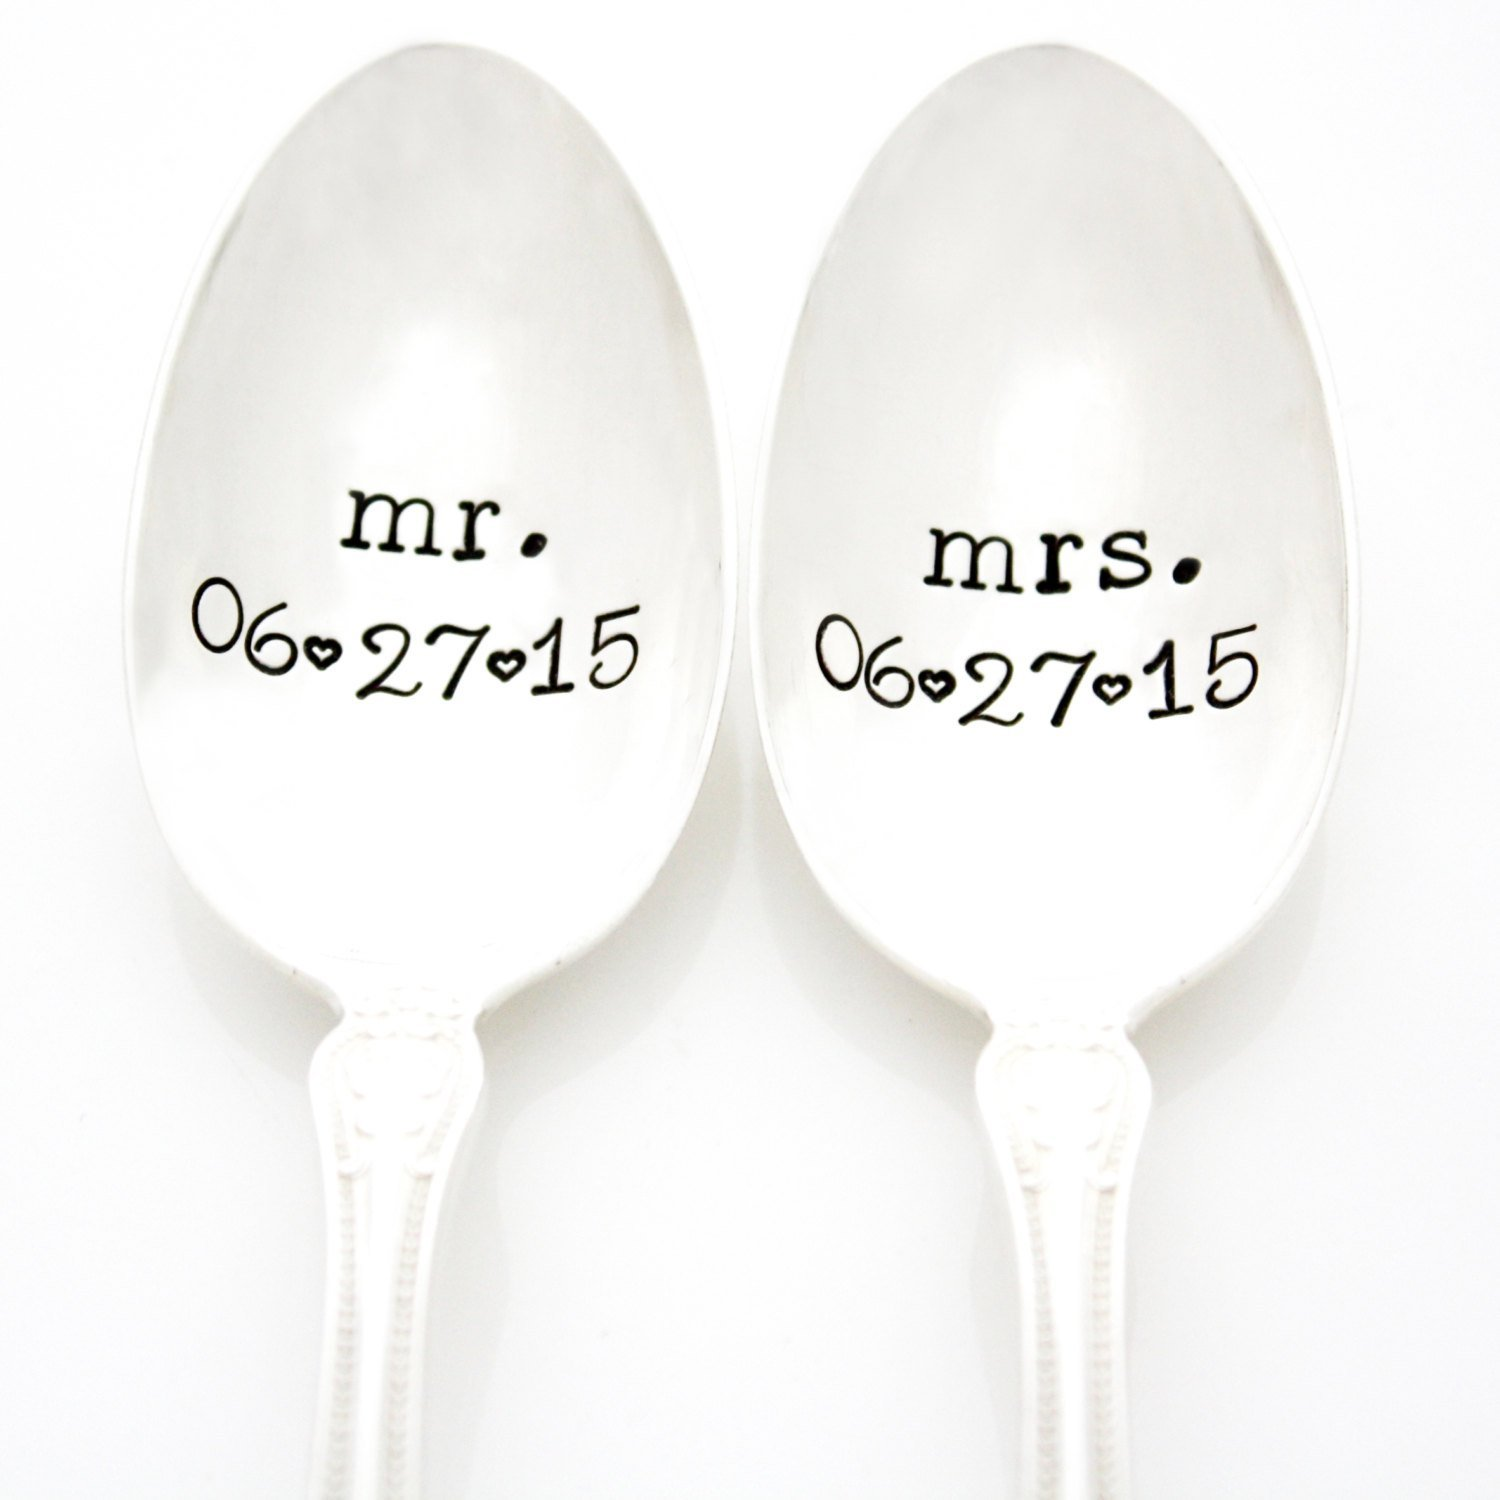 Custom Mr. and Mrs. Spoons with Wedding Date. Hand Stamped Vintage Coffee Spoons. Personalized Stamped Spoons by Milk & Honey Luxuries. Part of the Martha Stewart American Made Market.